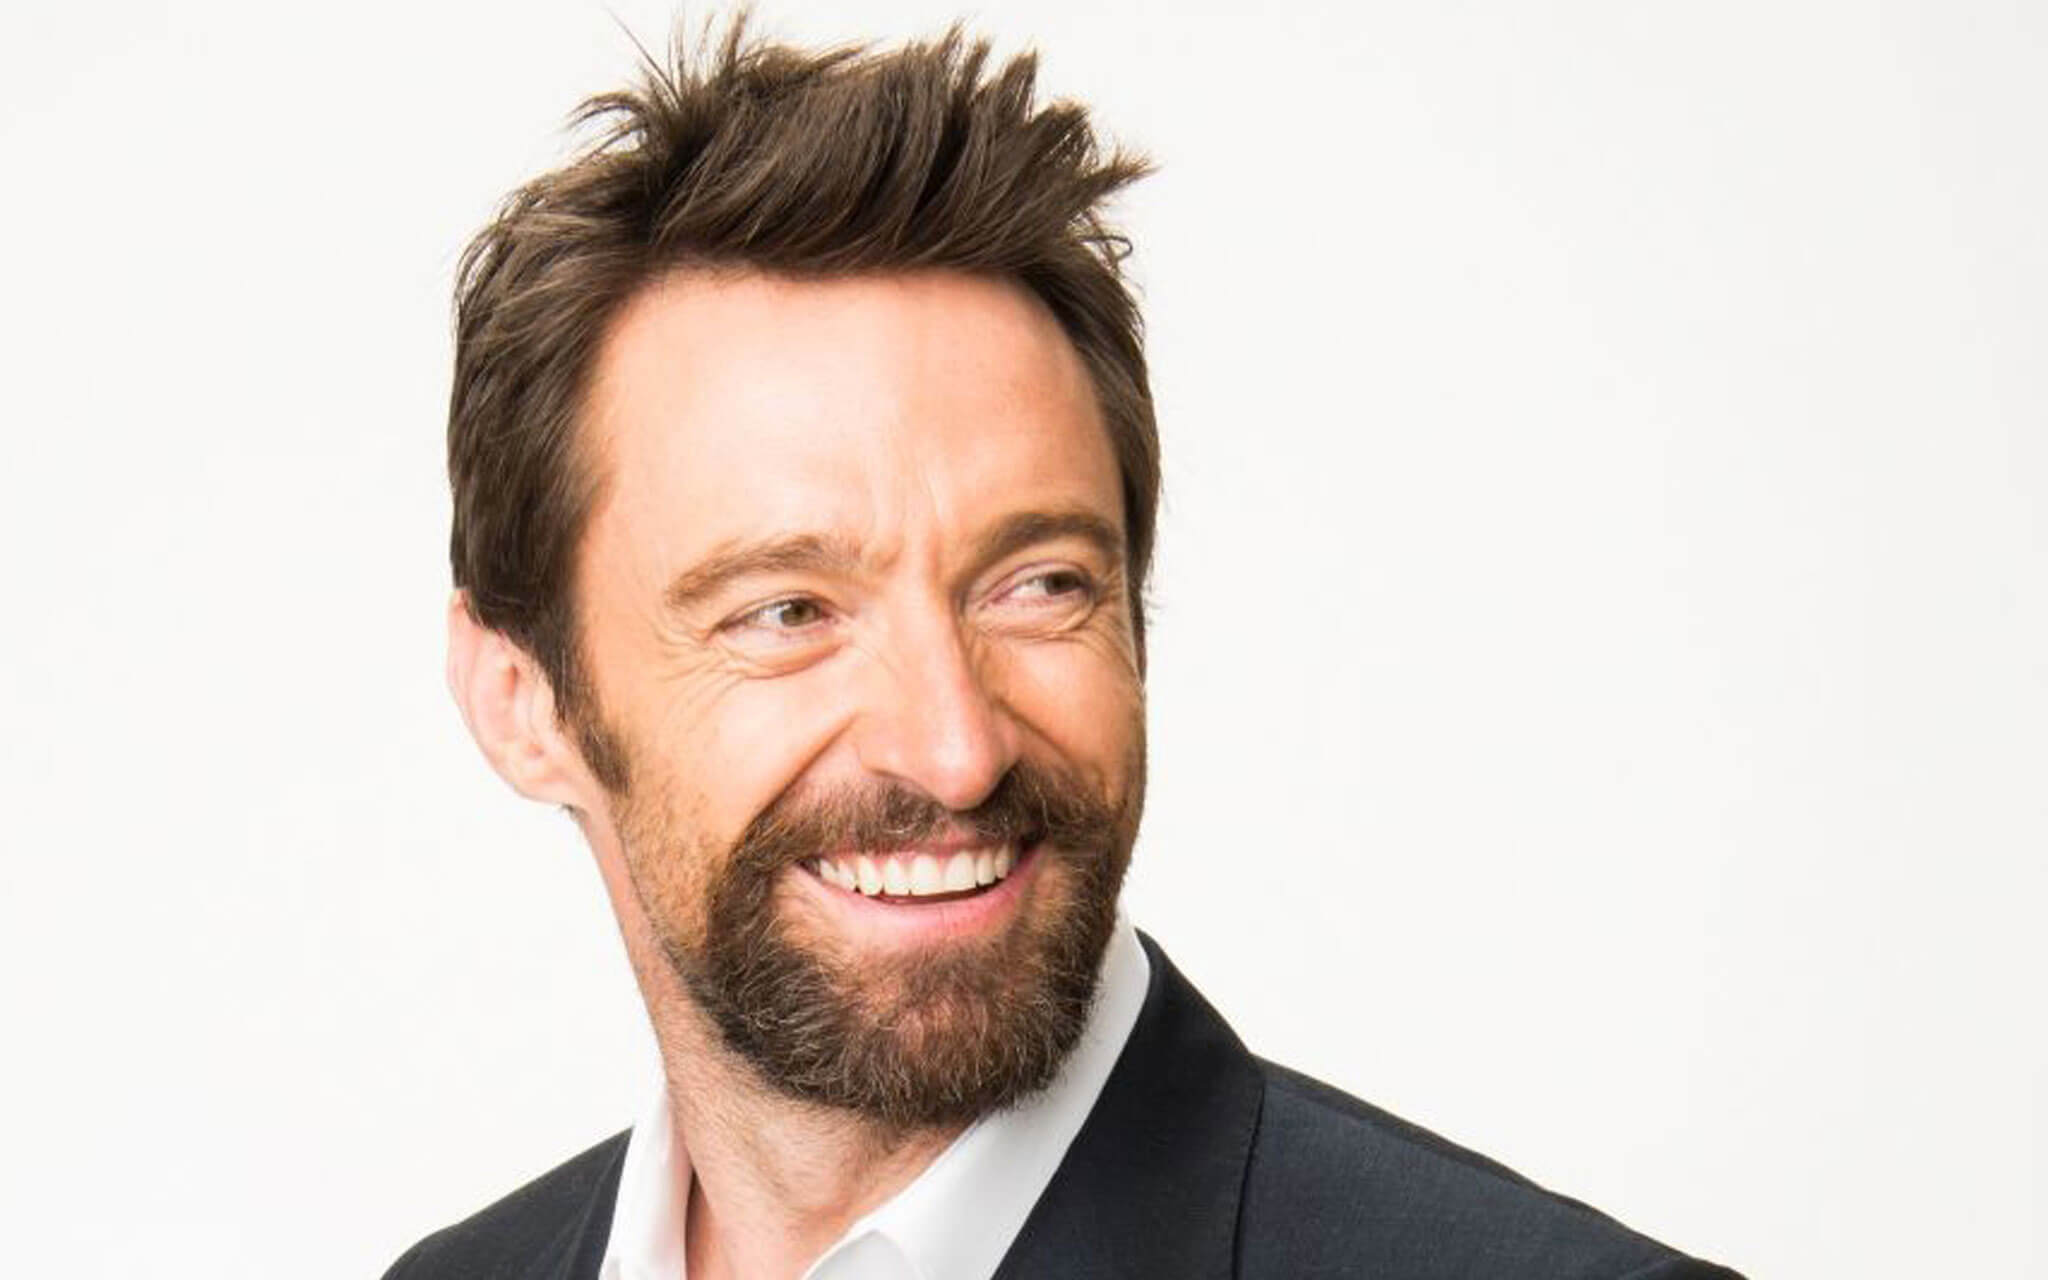 Hugh Jackman is a patient of Beverly Hills cosmetic dentist Dr. Bill Dorfman